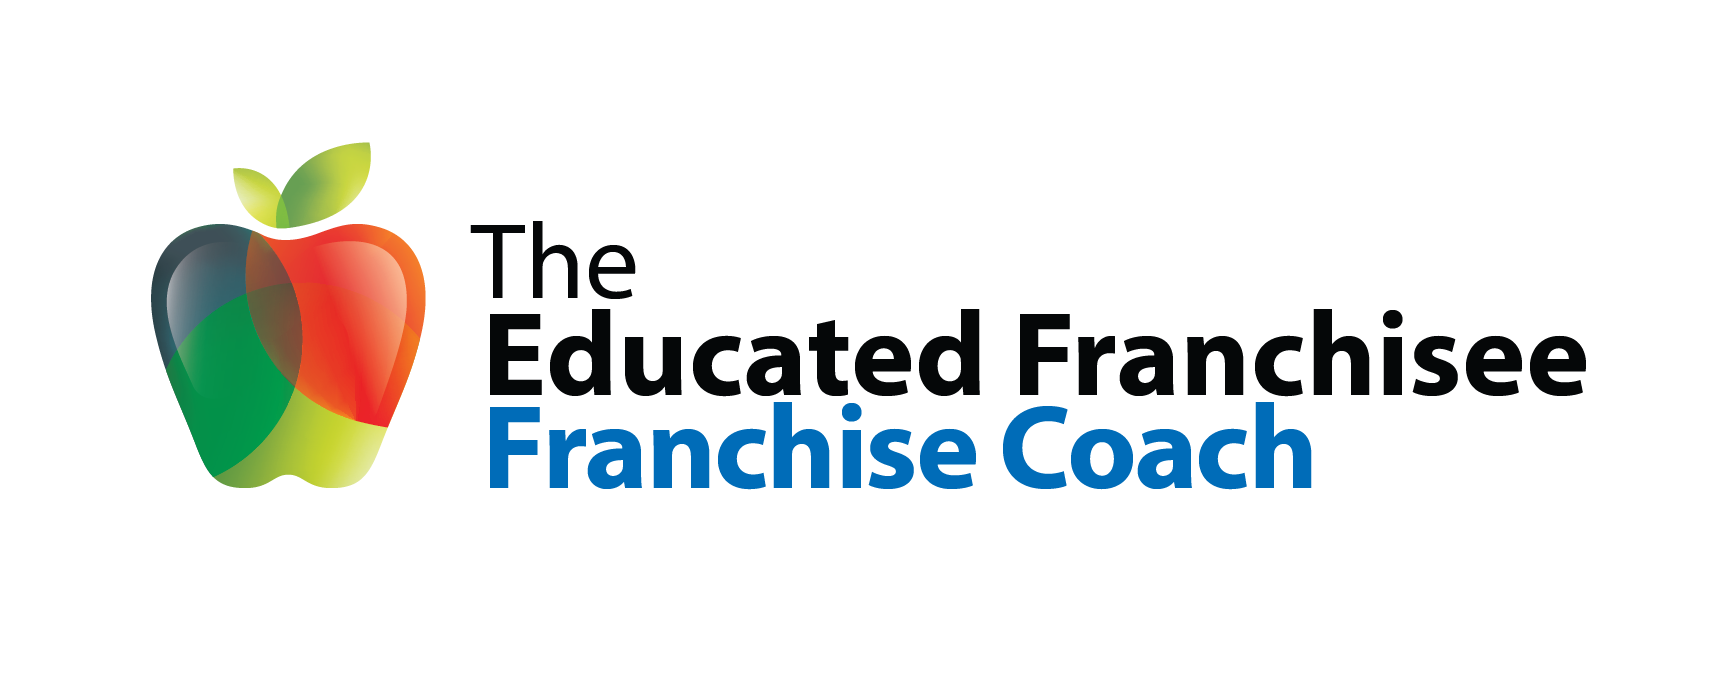 https://educatedfranchisee.com/wp-content/uploads/2017/07/EF_Coach.png